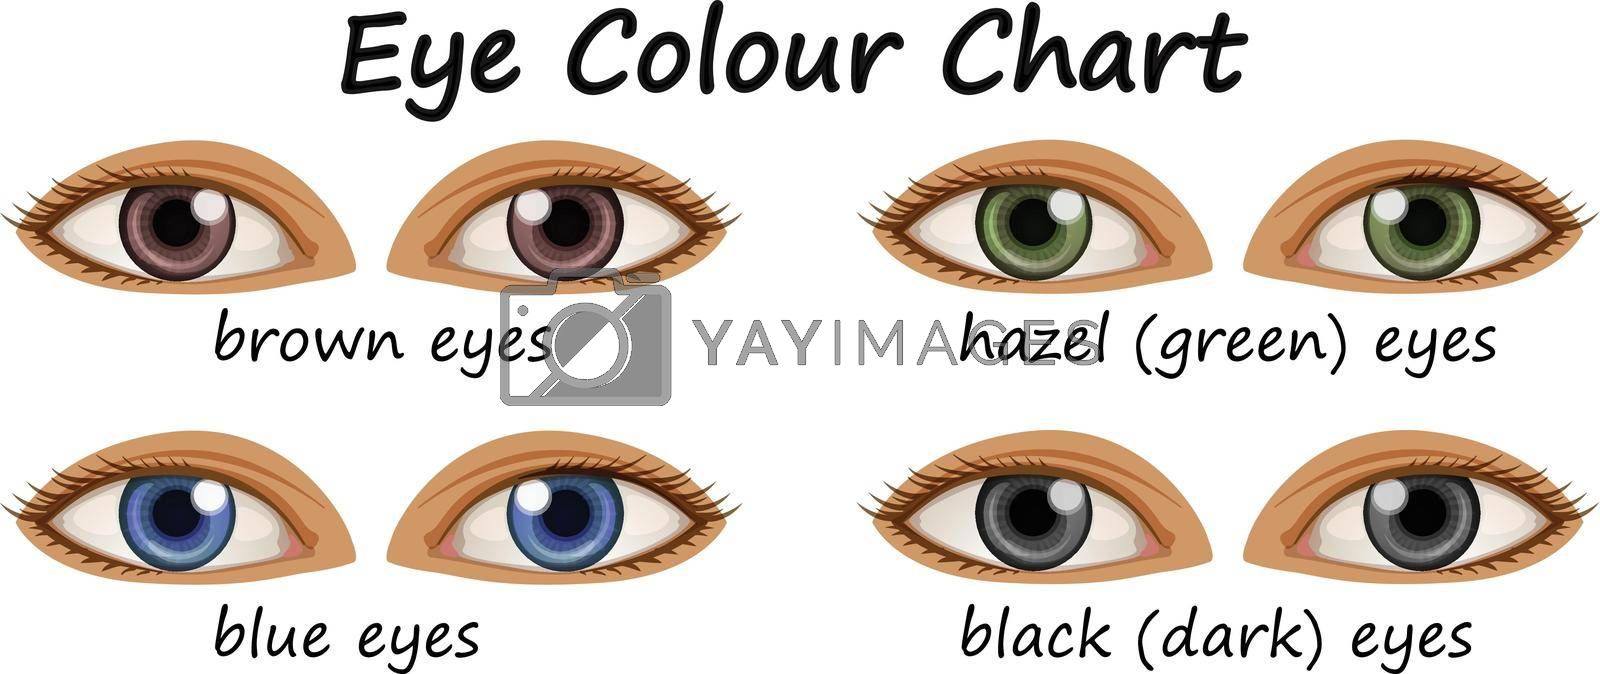 Human eyes with different colors illustration